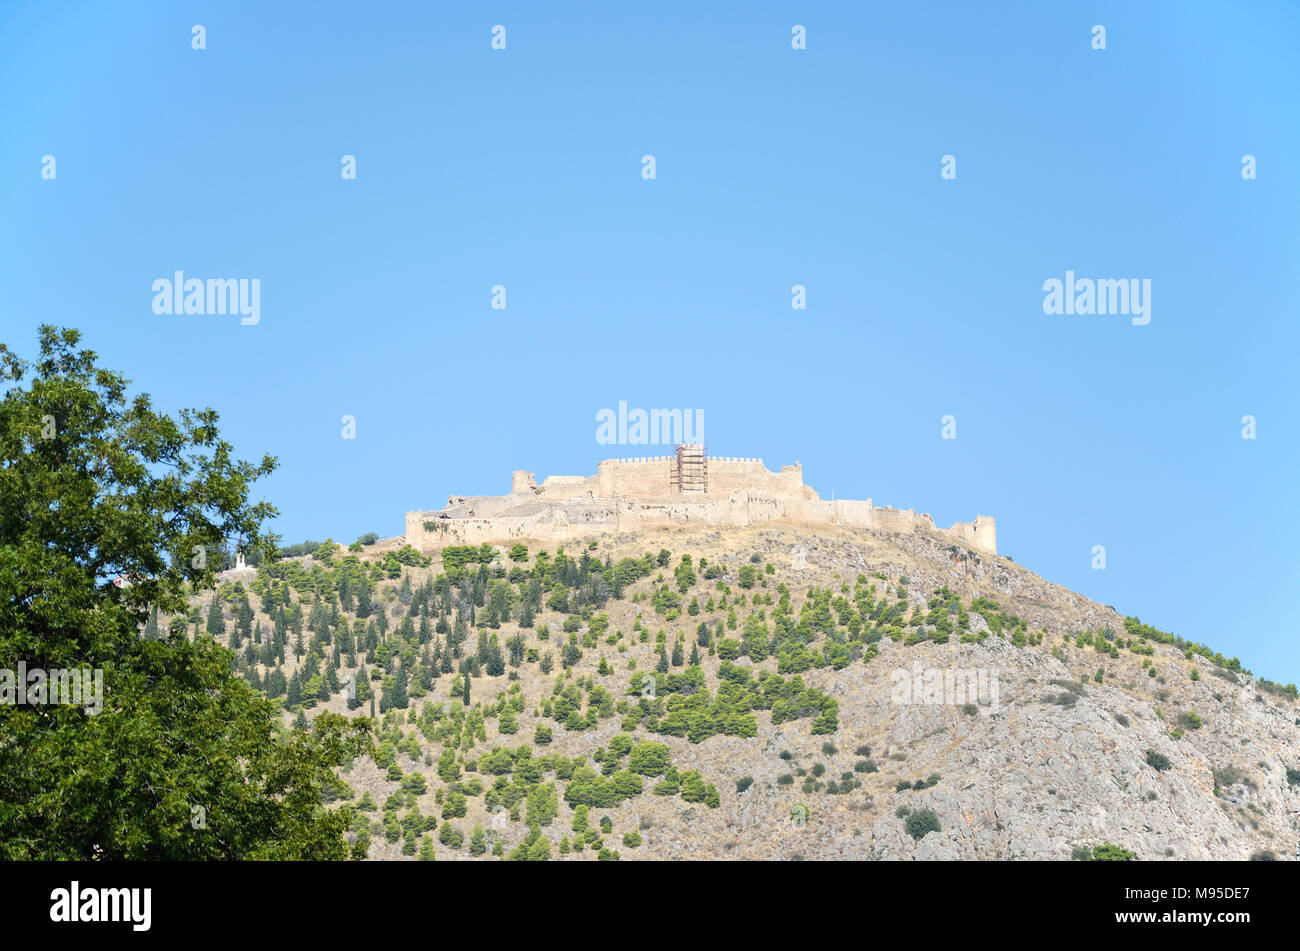 Castle of Argos or Larissa castle in Peloponnese, Greece - Stock Image